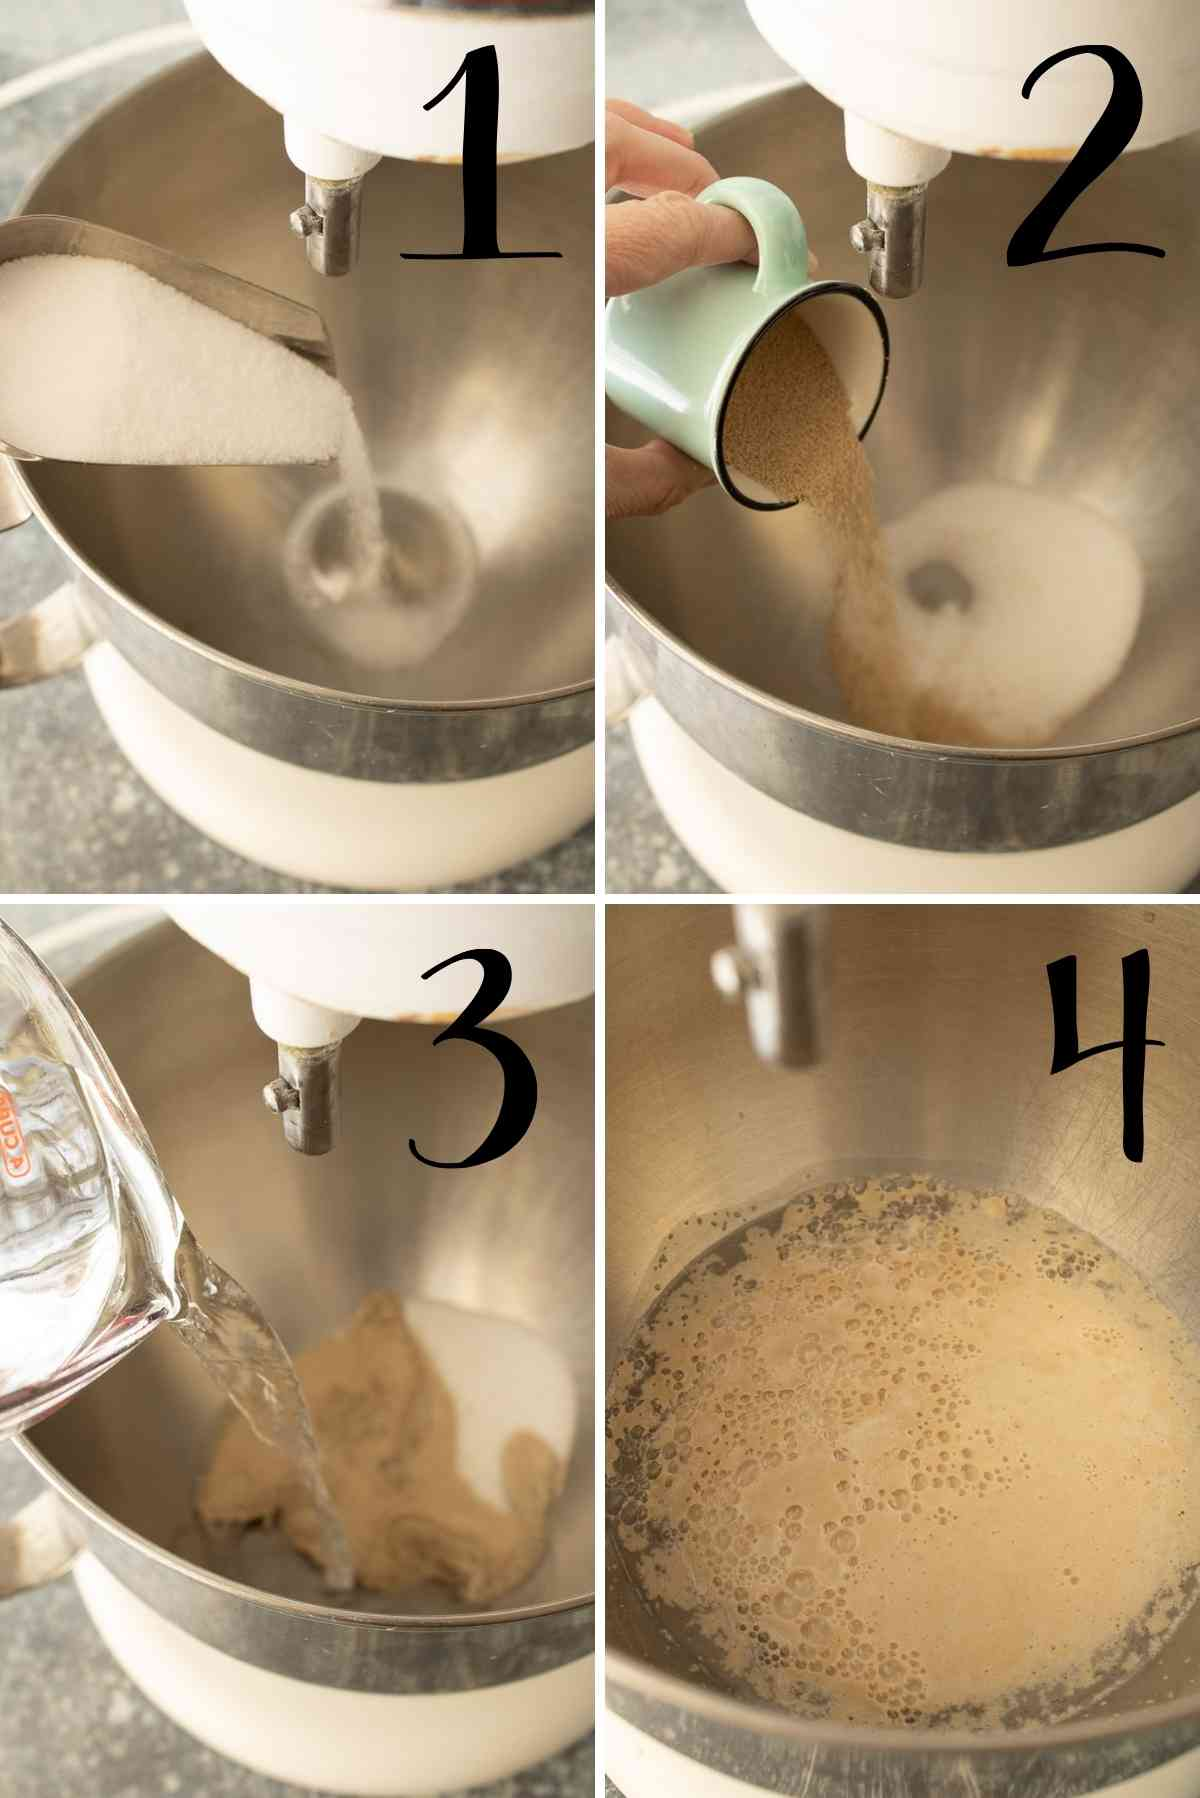 Sugar, yeast and water added to a mixer bowl to get foamy.